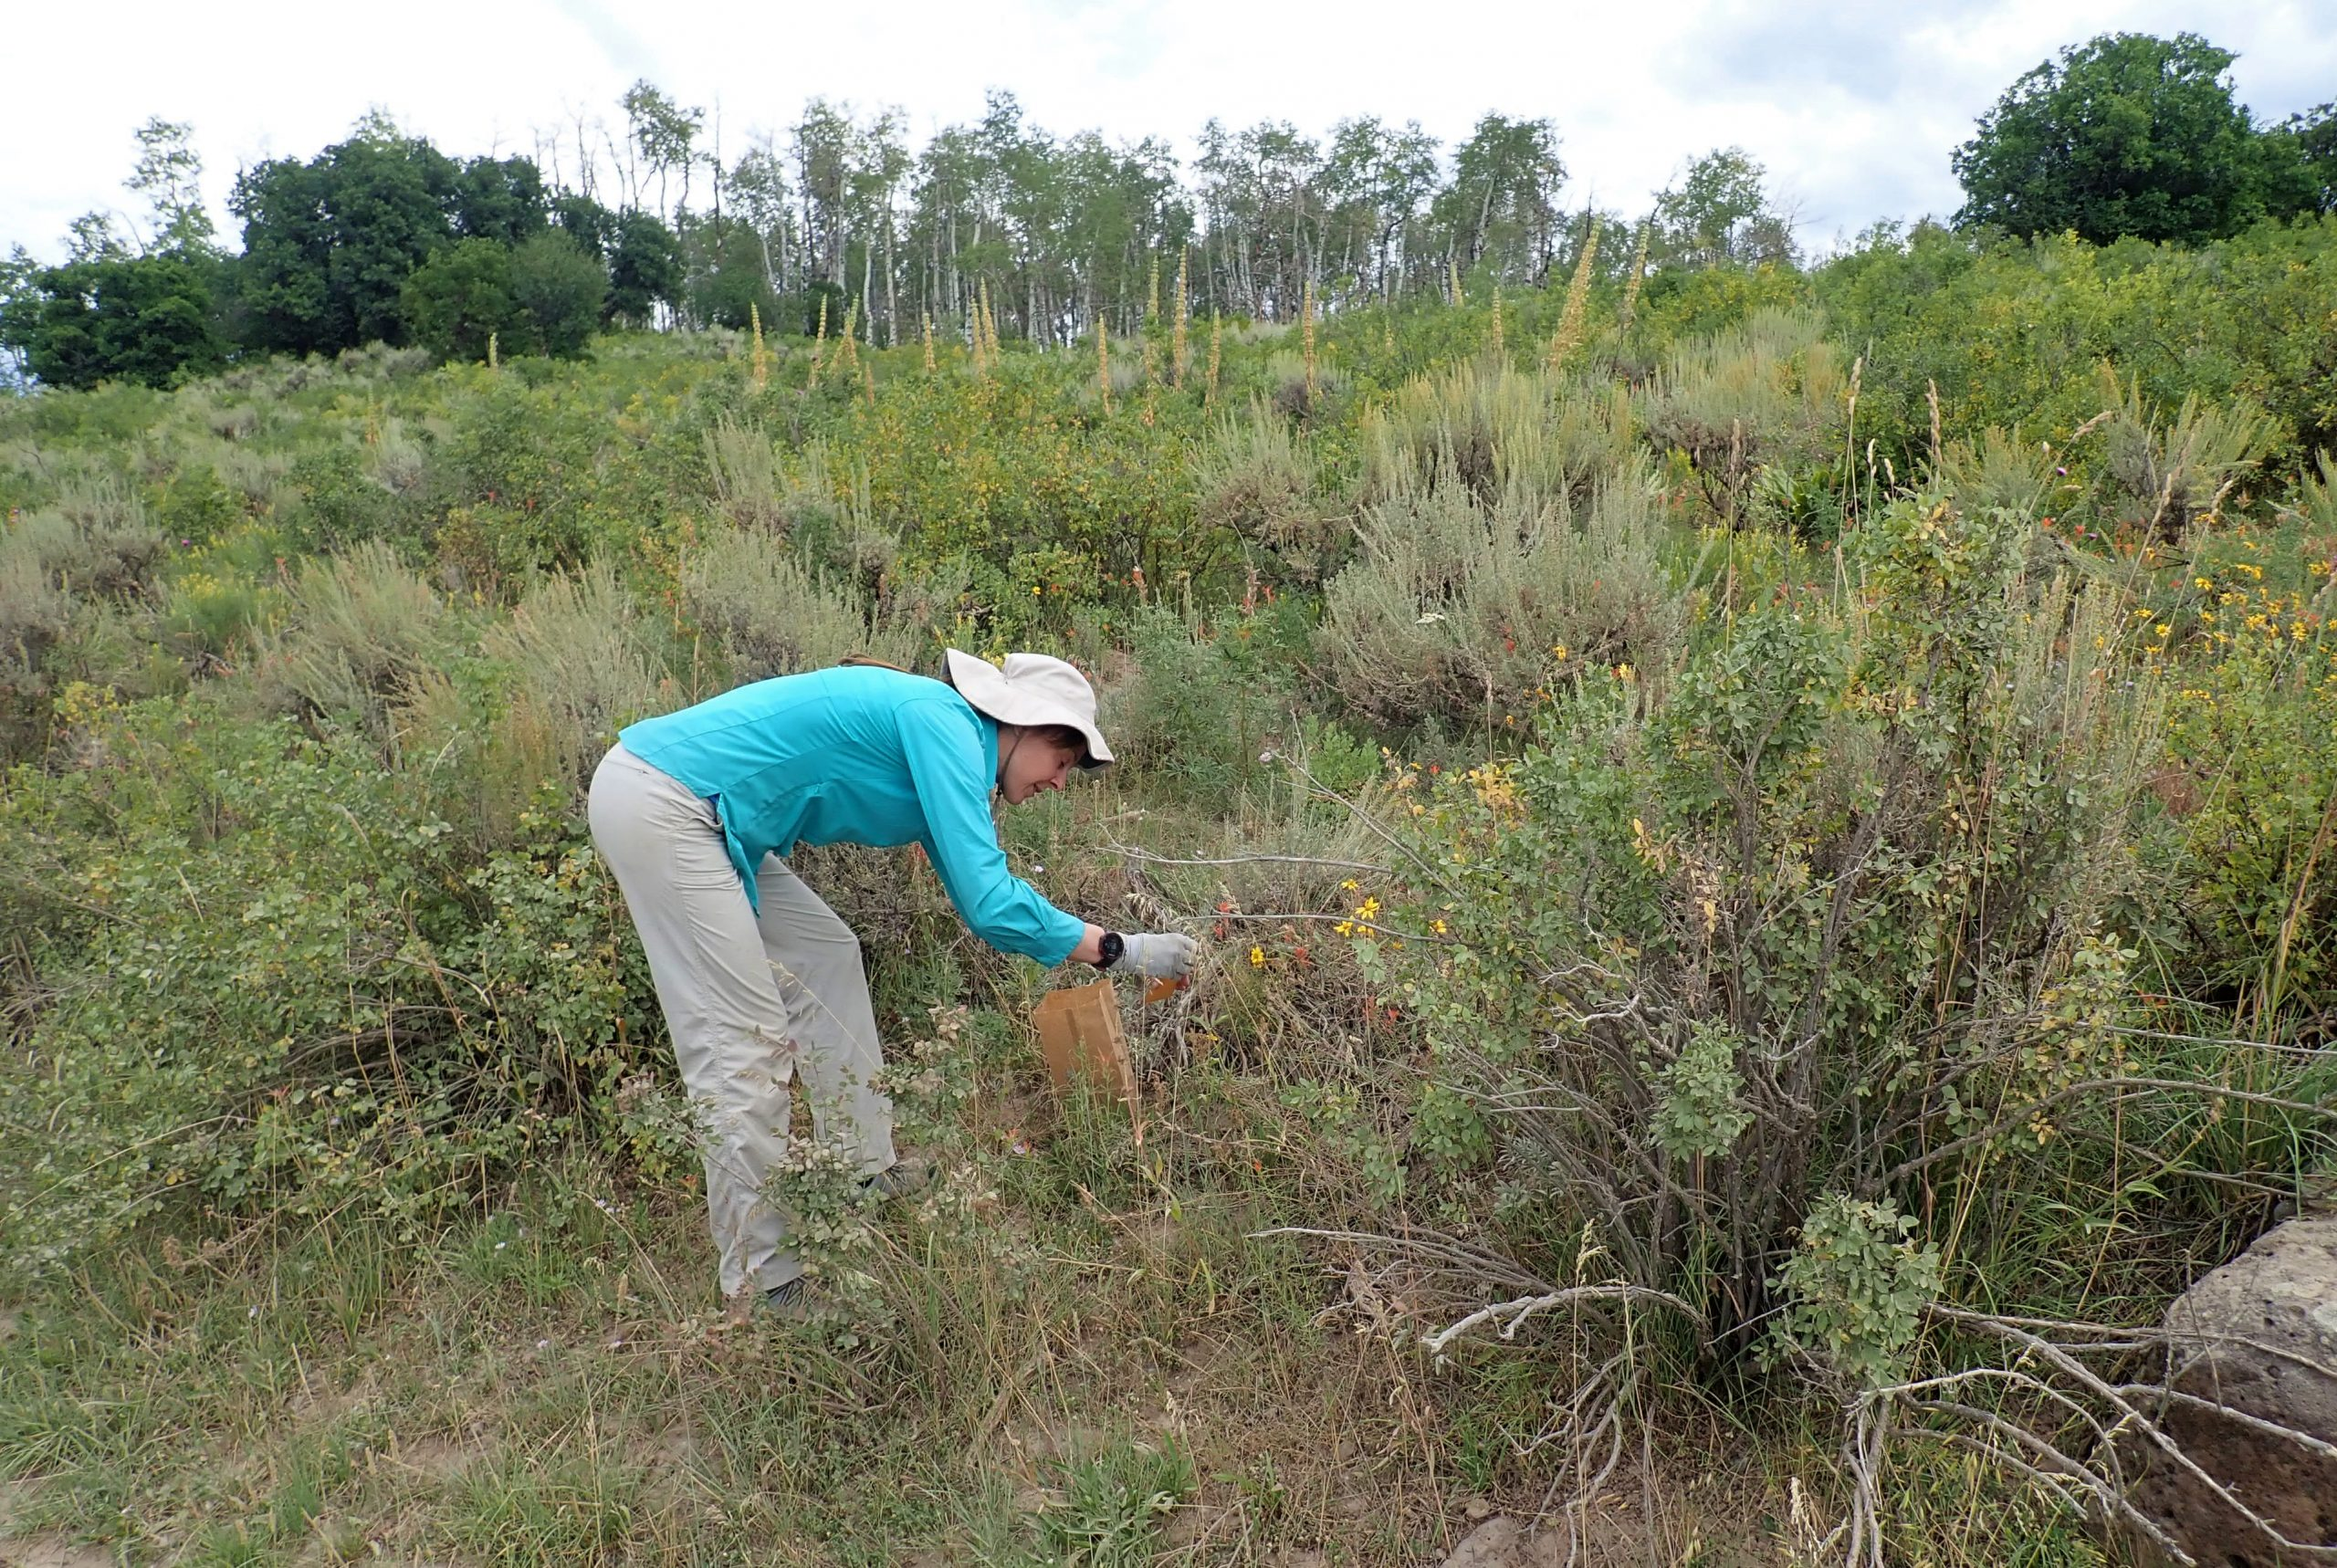 Chrissy Alba collecting seed during the second collection trip for Grand Mesa beardtongue seed.